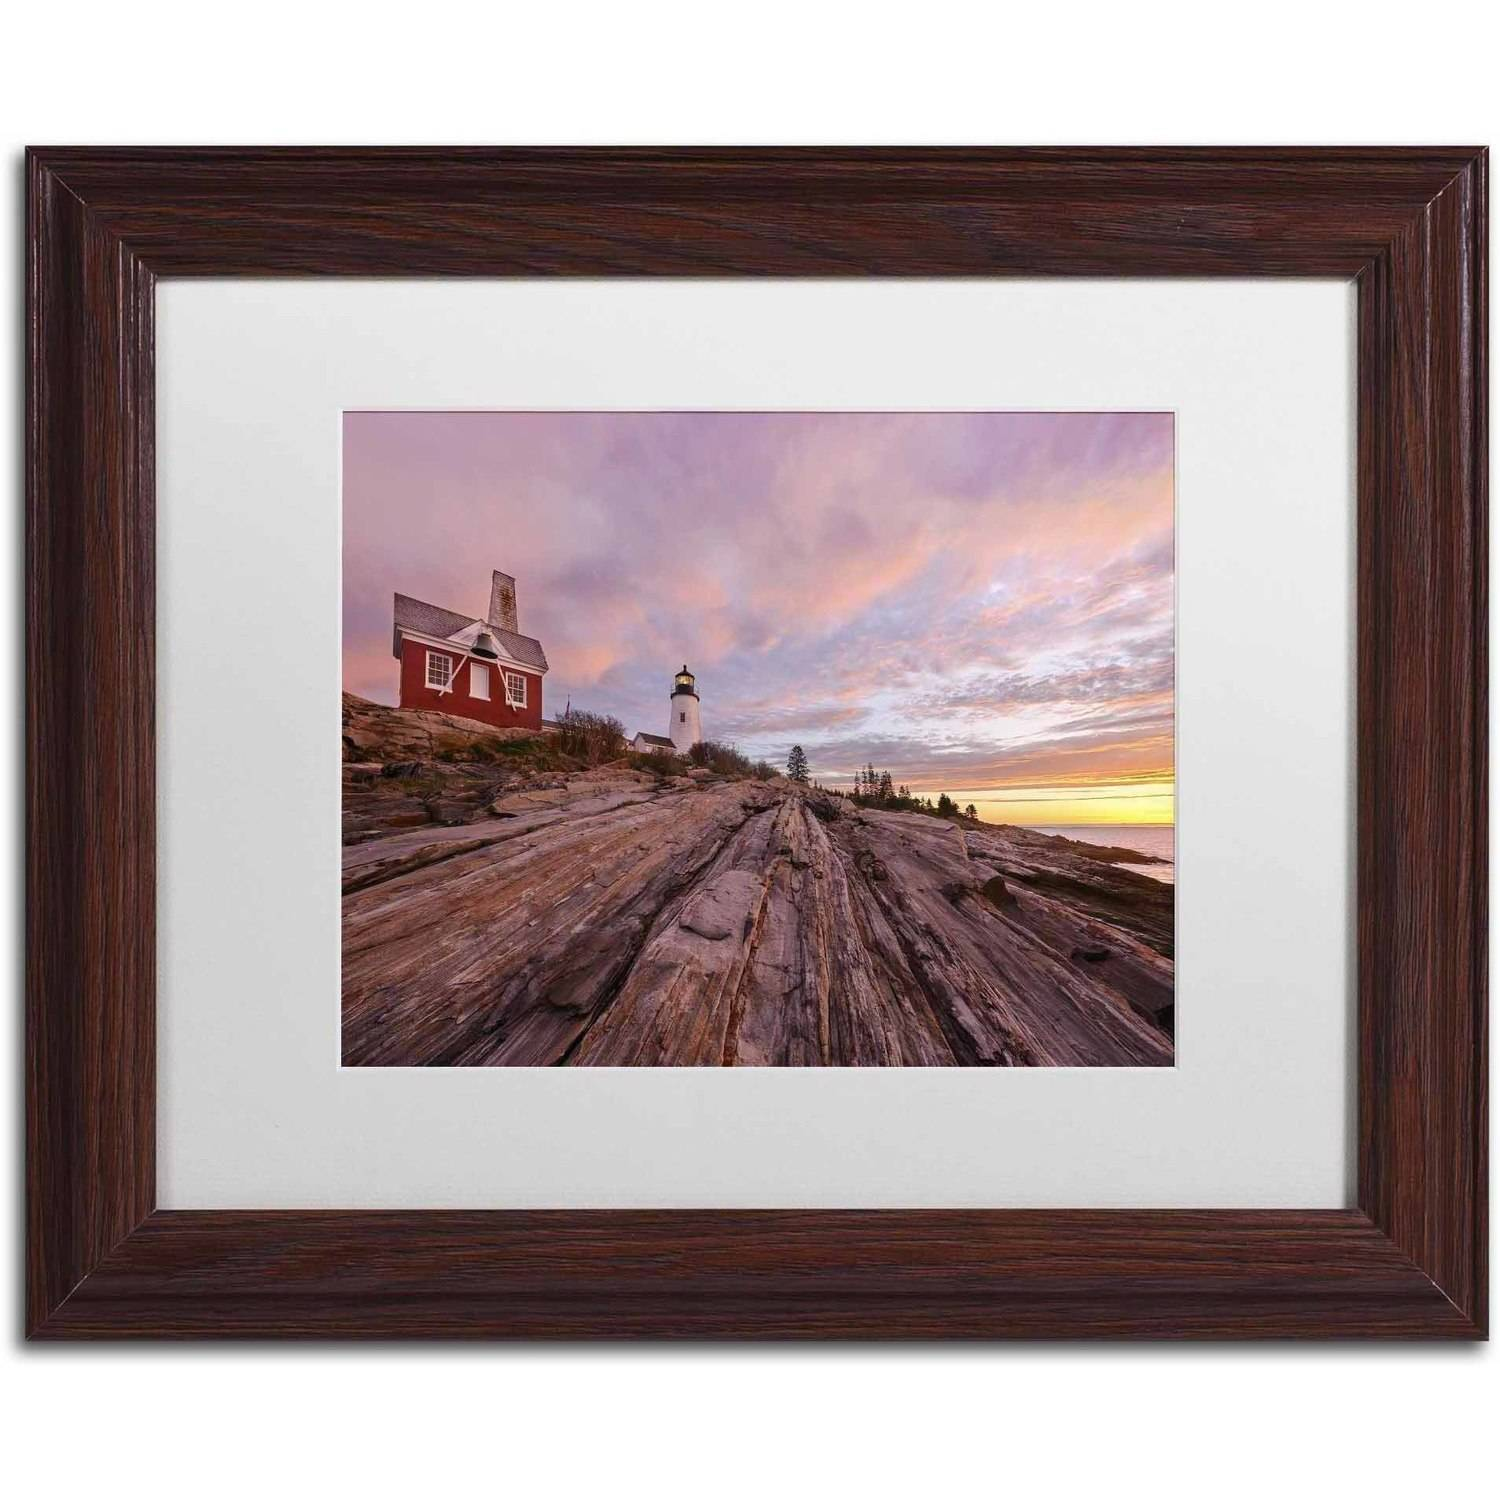 Trademark Fine Art 'Granite Marvel' Canvas Art by Michael Blanchette Photography, White Matte, Wood Frame